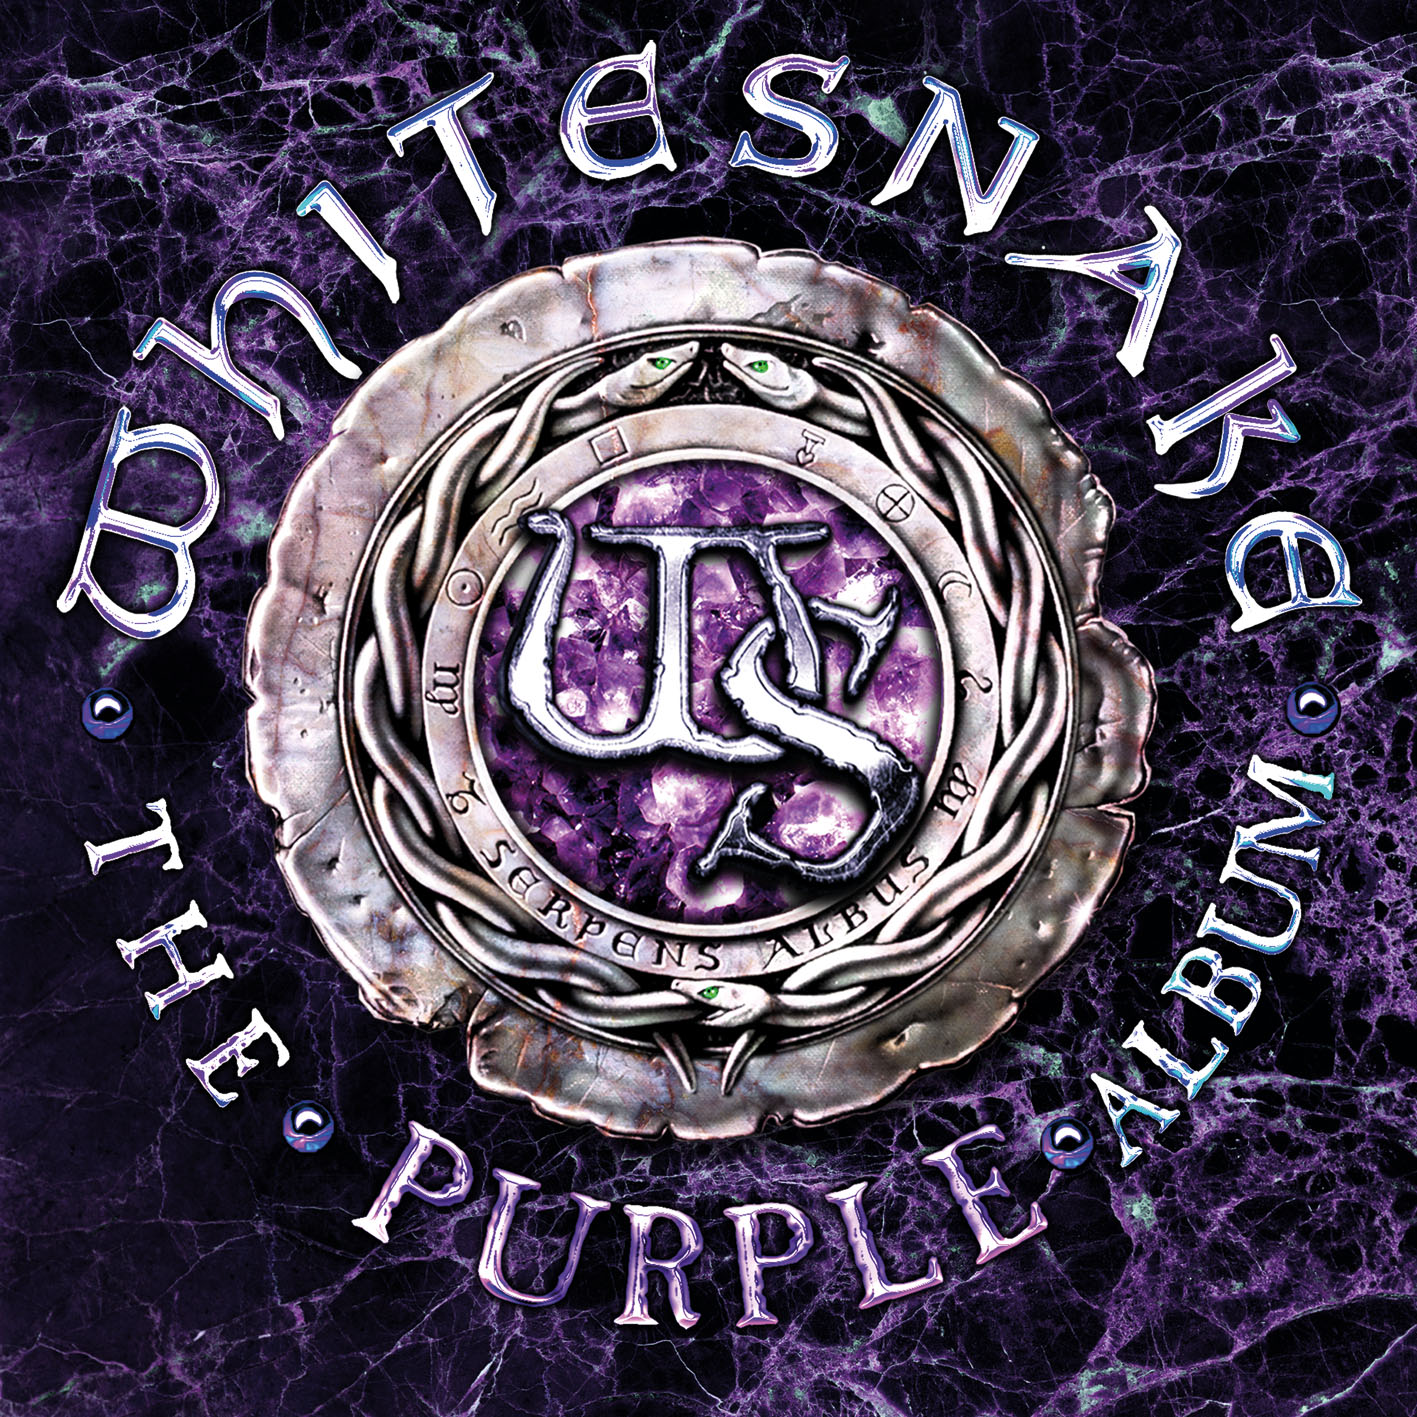 Review: Whitesnake delves deep into Purple past on new album